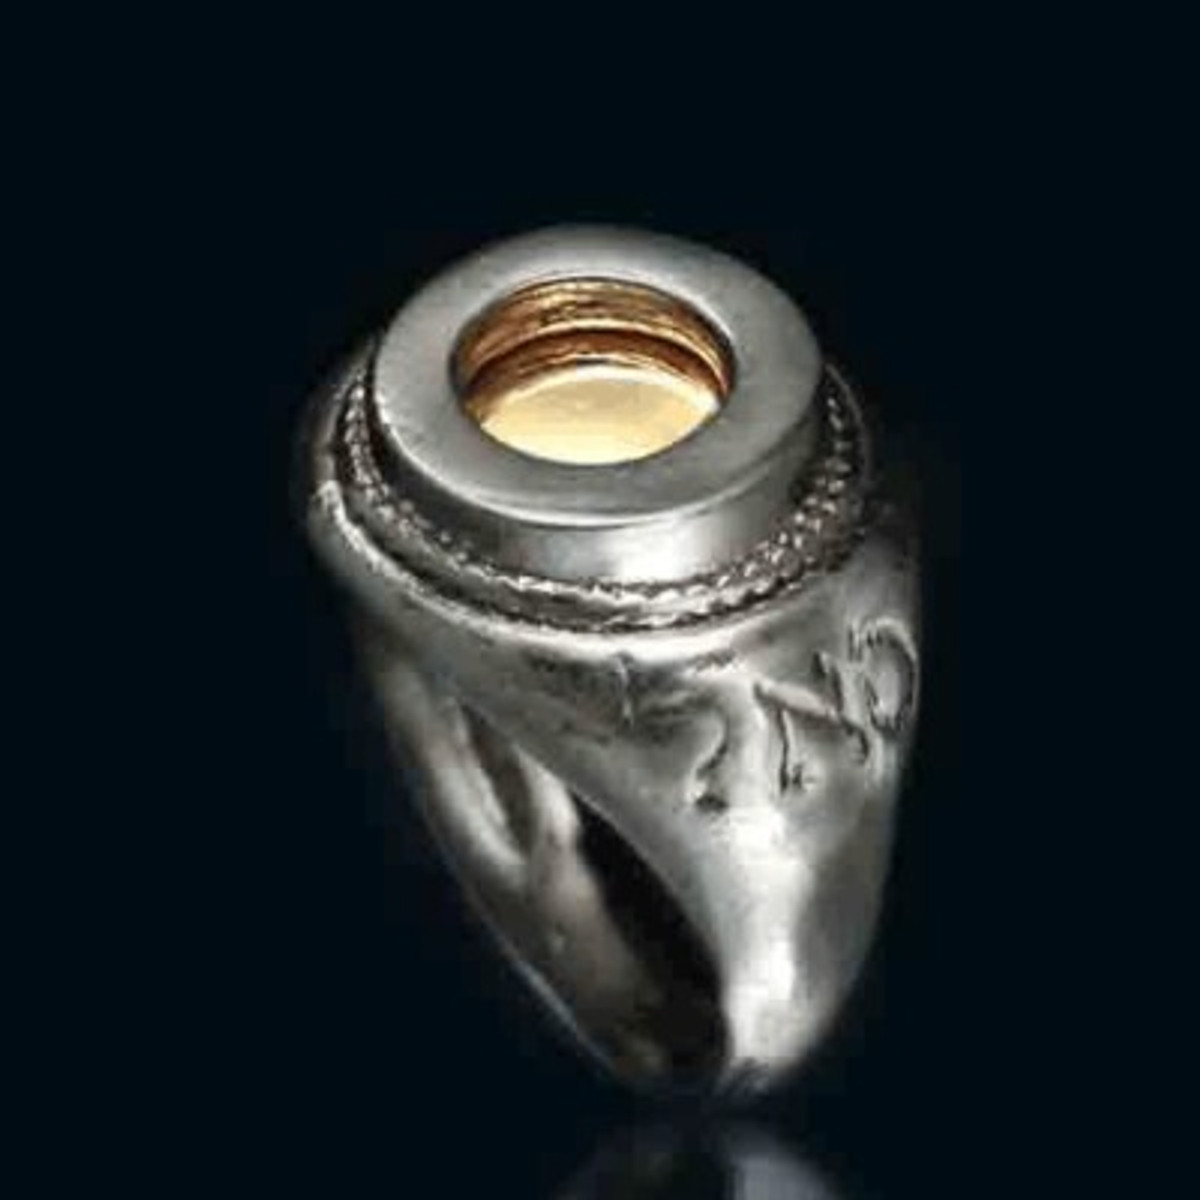 Five Metals Eye Ring Amulet For Success